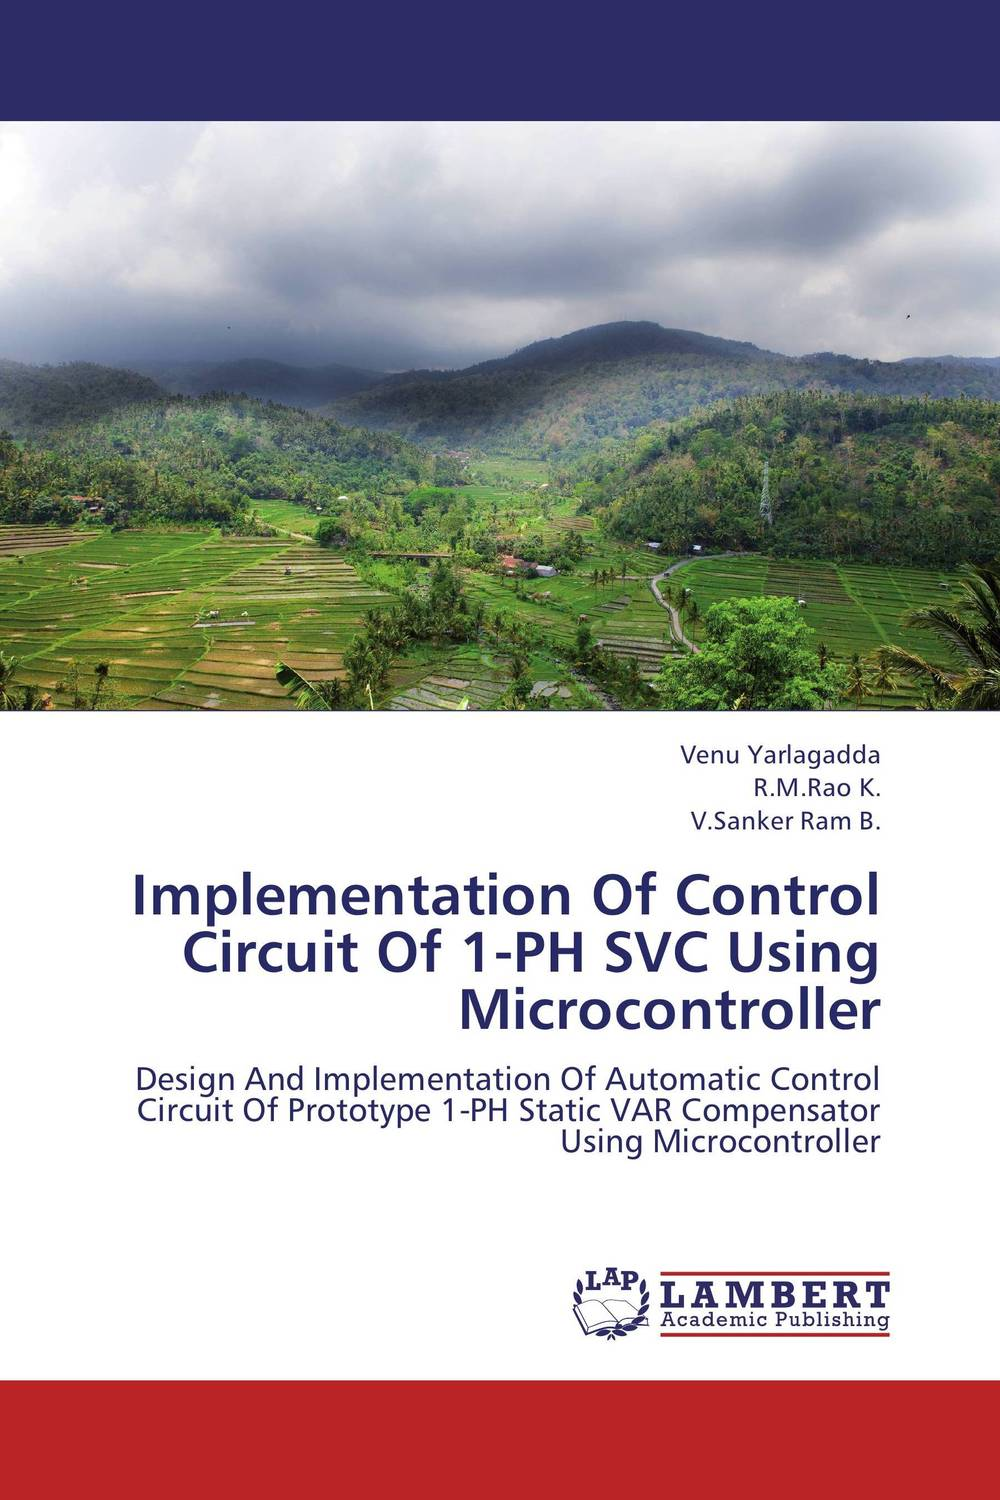 Implementation Of Control Circuit Of 1-PH SVC Using Microcontroller controlling an inverted pendulum using microcontroller